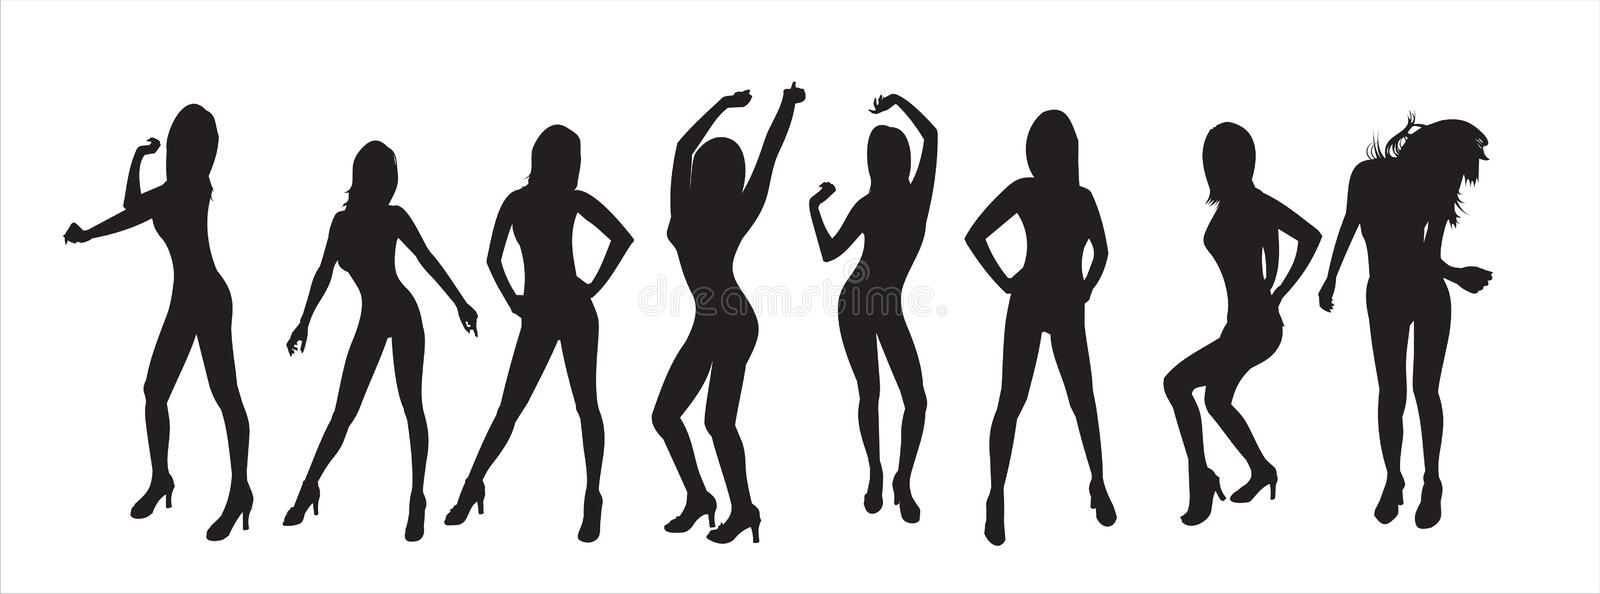 Silhouettes of girls stock image